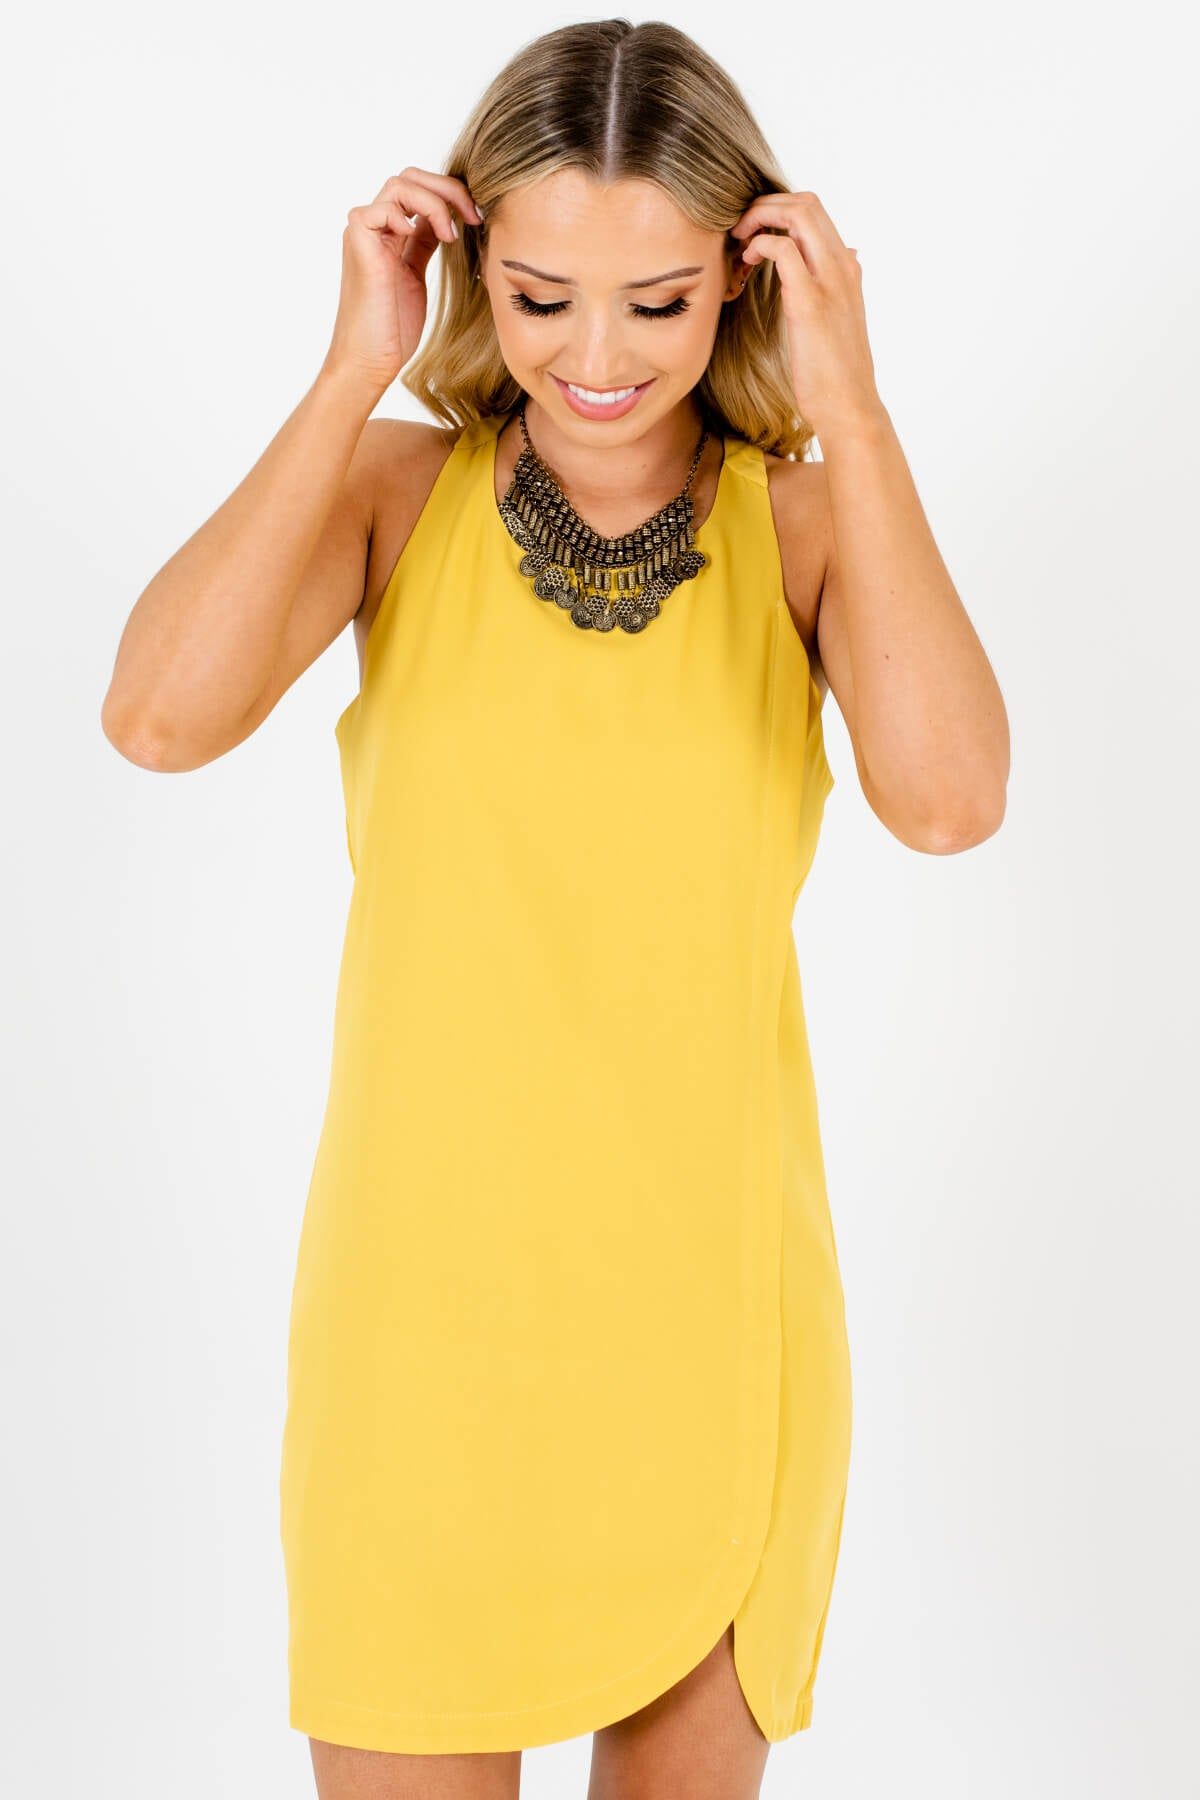 Chartreuse Yellow Asymmetrical Seam Mini Dresses for Women